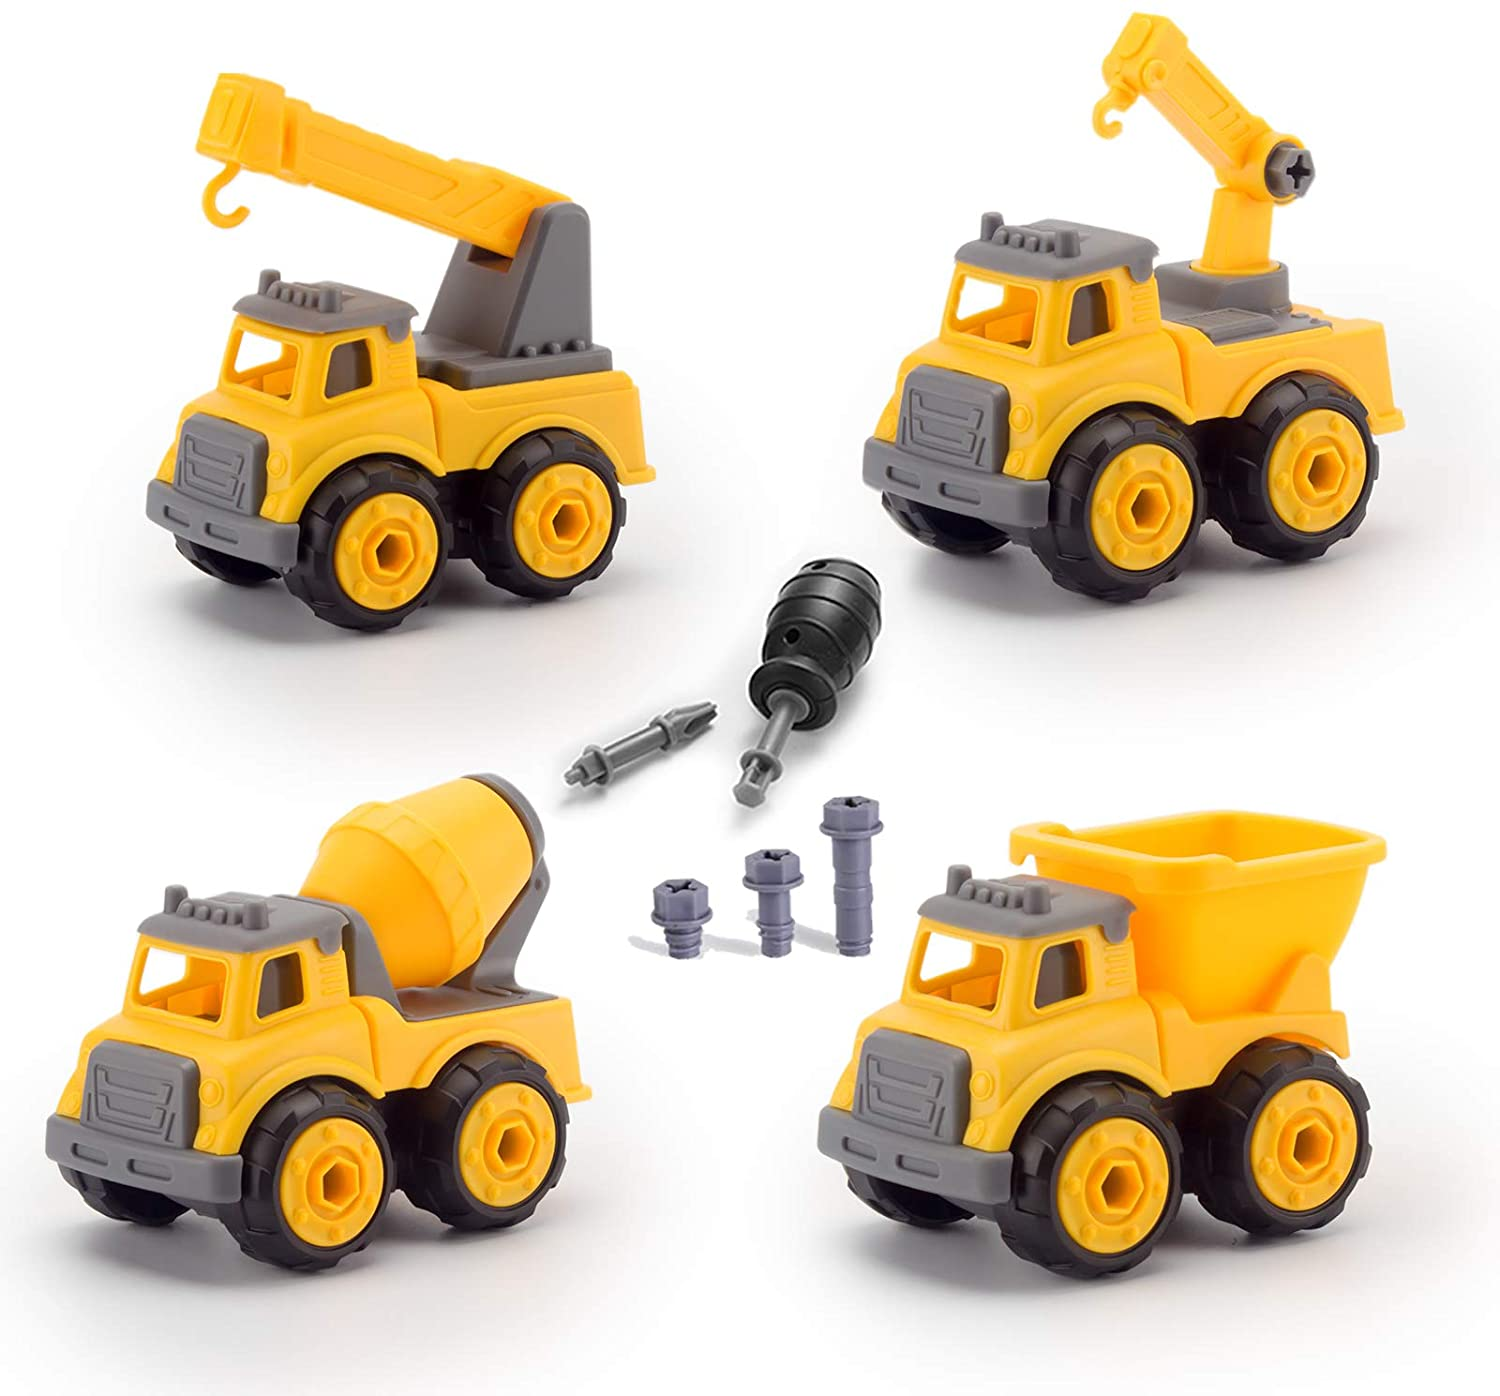 Construction Toys,Take Apart Toy Racing Car,Toy Trucks STEM Toys for 3 4 5 Year Old Boys Kids,Dump Trucks Toy with Toy Drill,Crane Toy Trucks for Boys Age 4,Construction Trucks Vehicles Birthday Gift